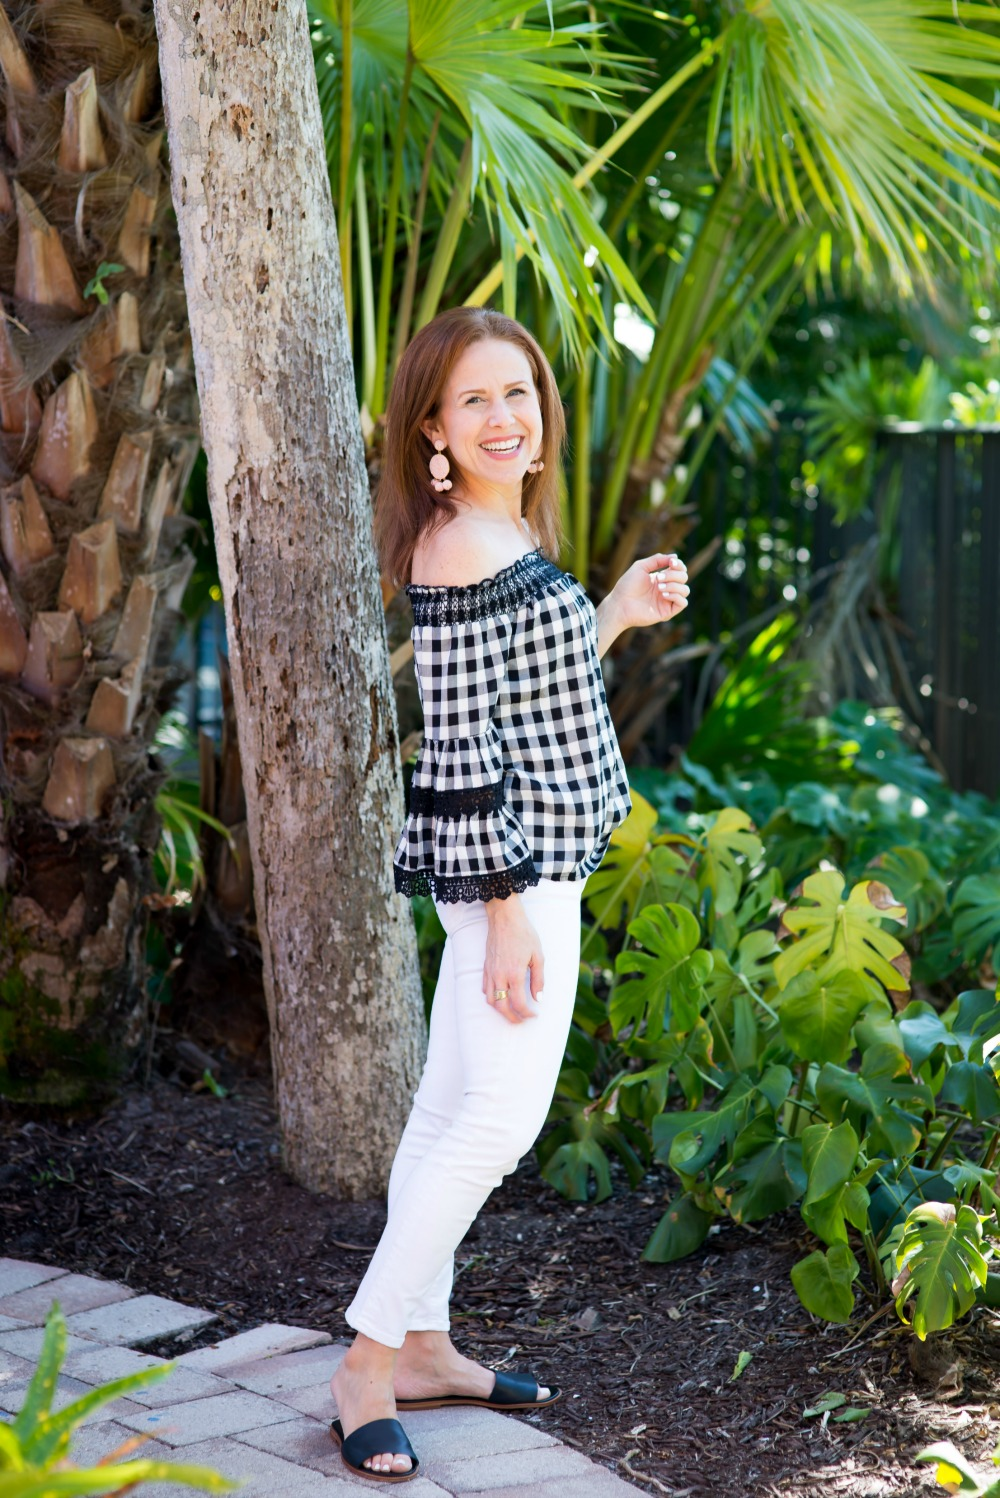 Casual spring style for the every girl // the modern savvy - Cute Plaid Top for Spring by popular Florida style blogger The Modern Savvy